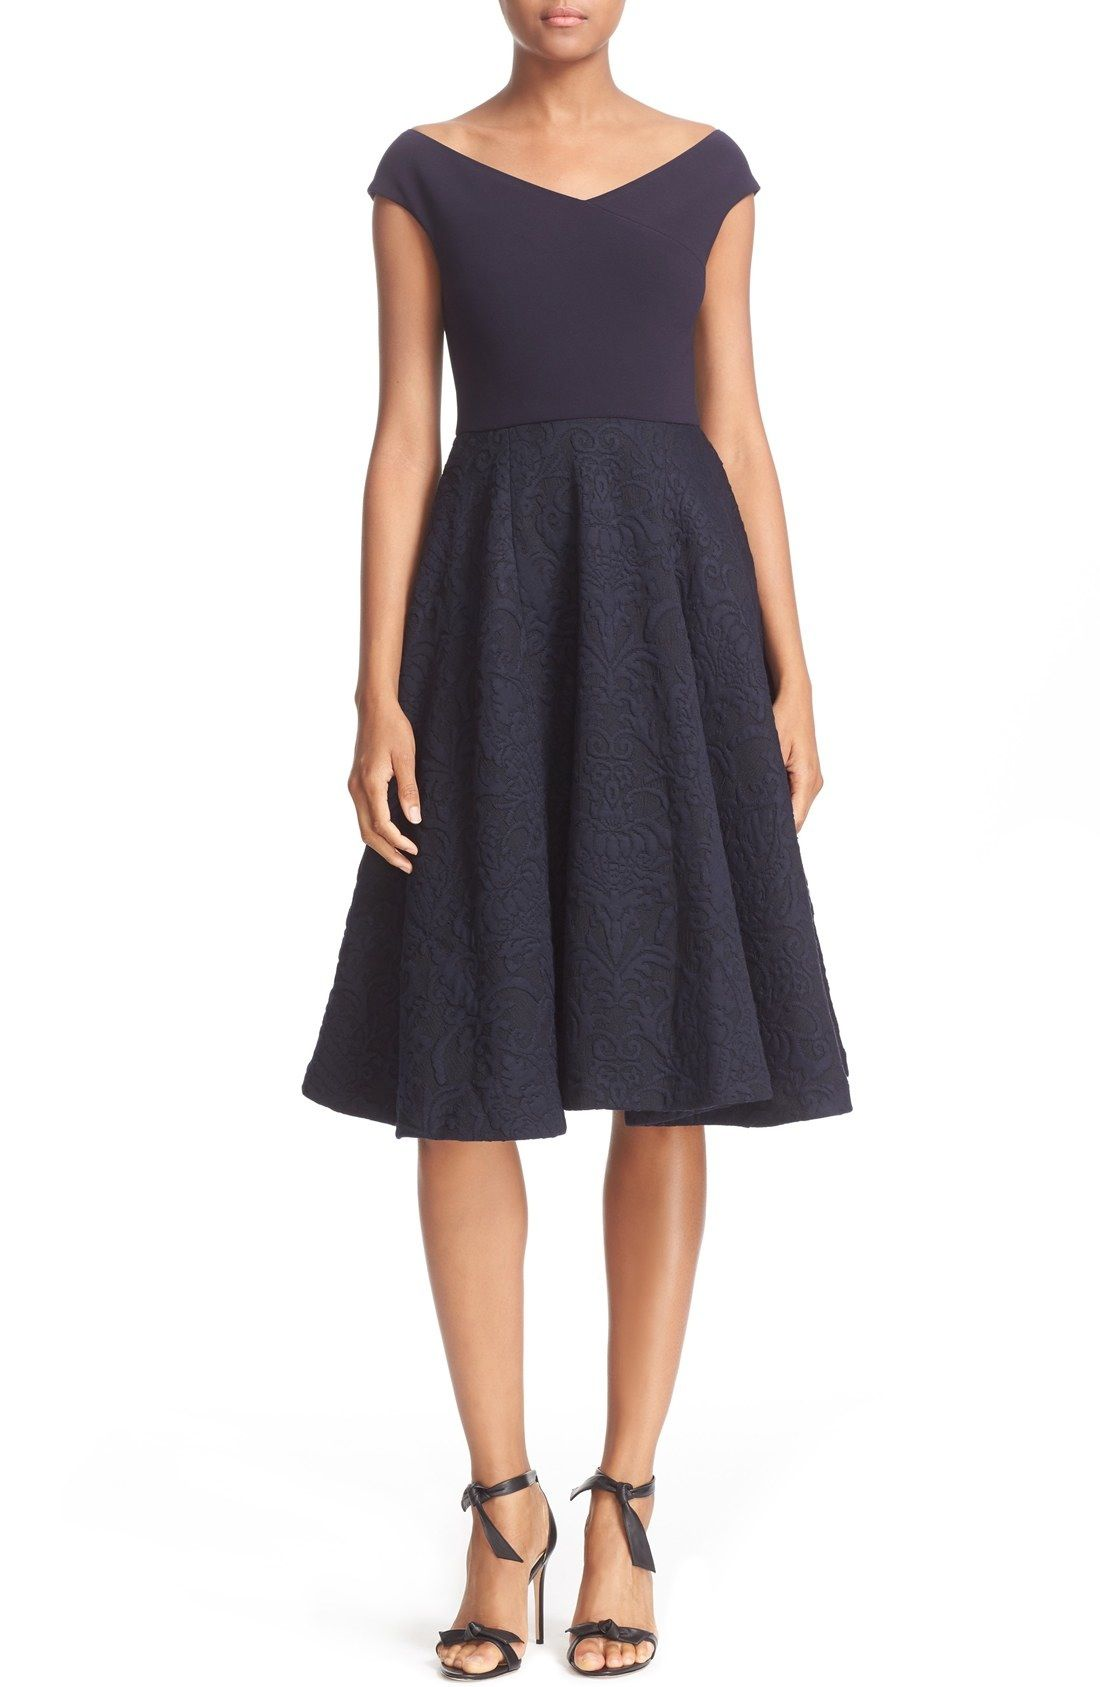 8aba05ca3cf1 Ted Baker London  Getris  Off the Shoulder Textured Skirt Fit ...